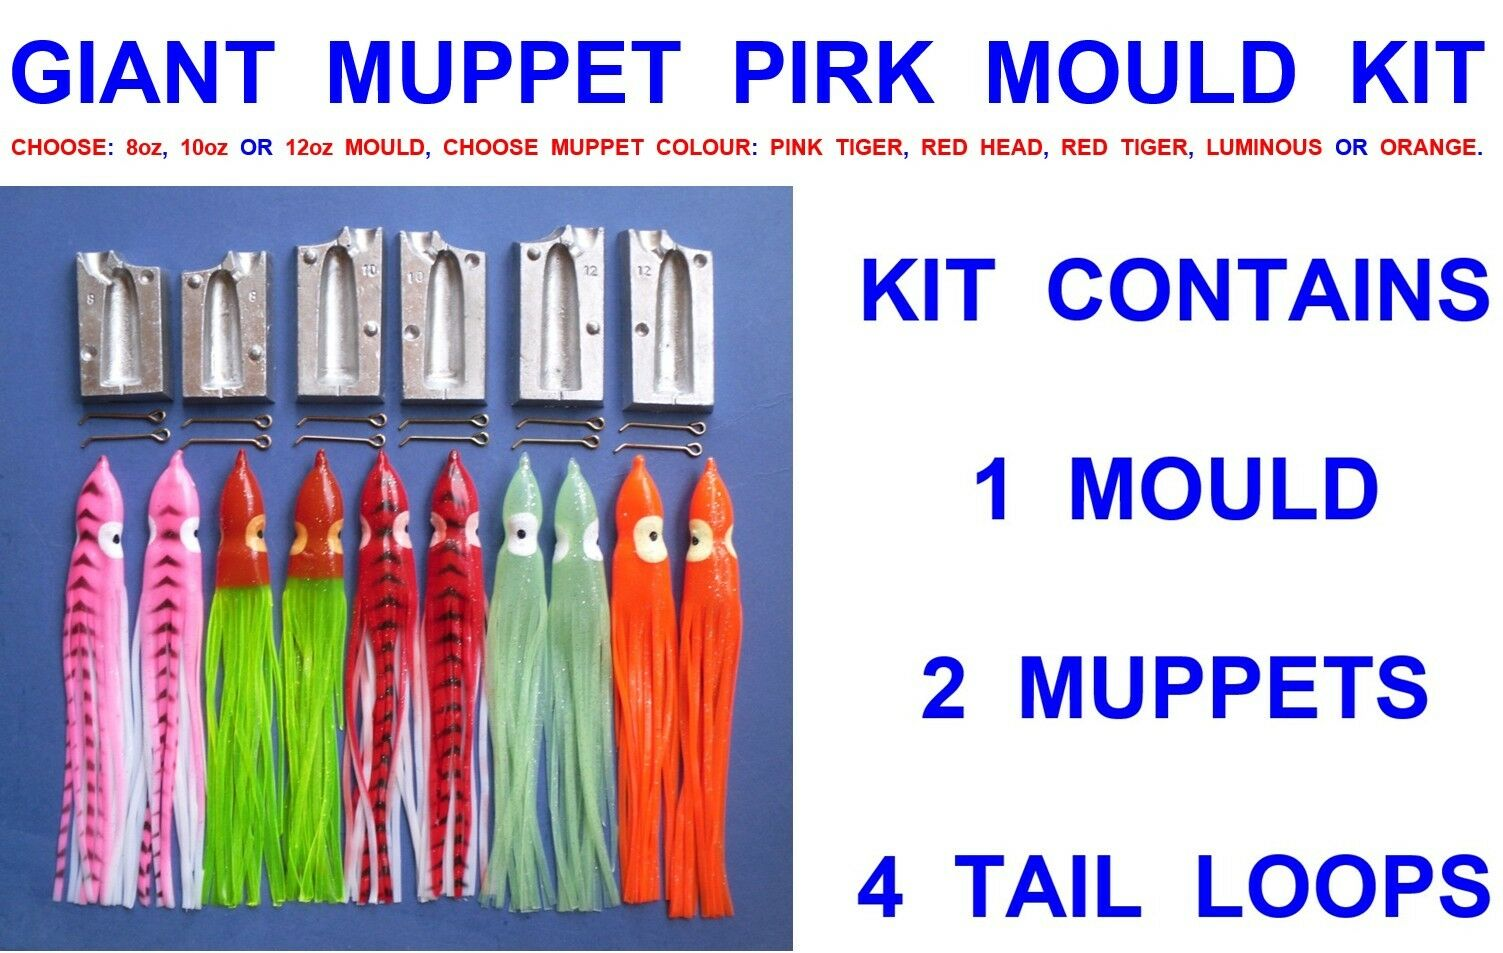 8oz muppet mould include 2 free muppets.